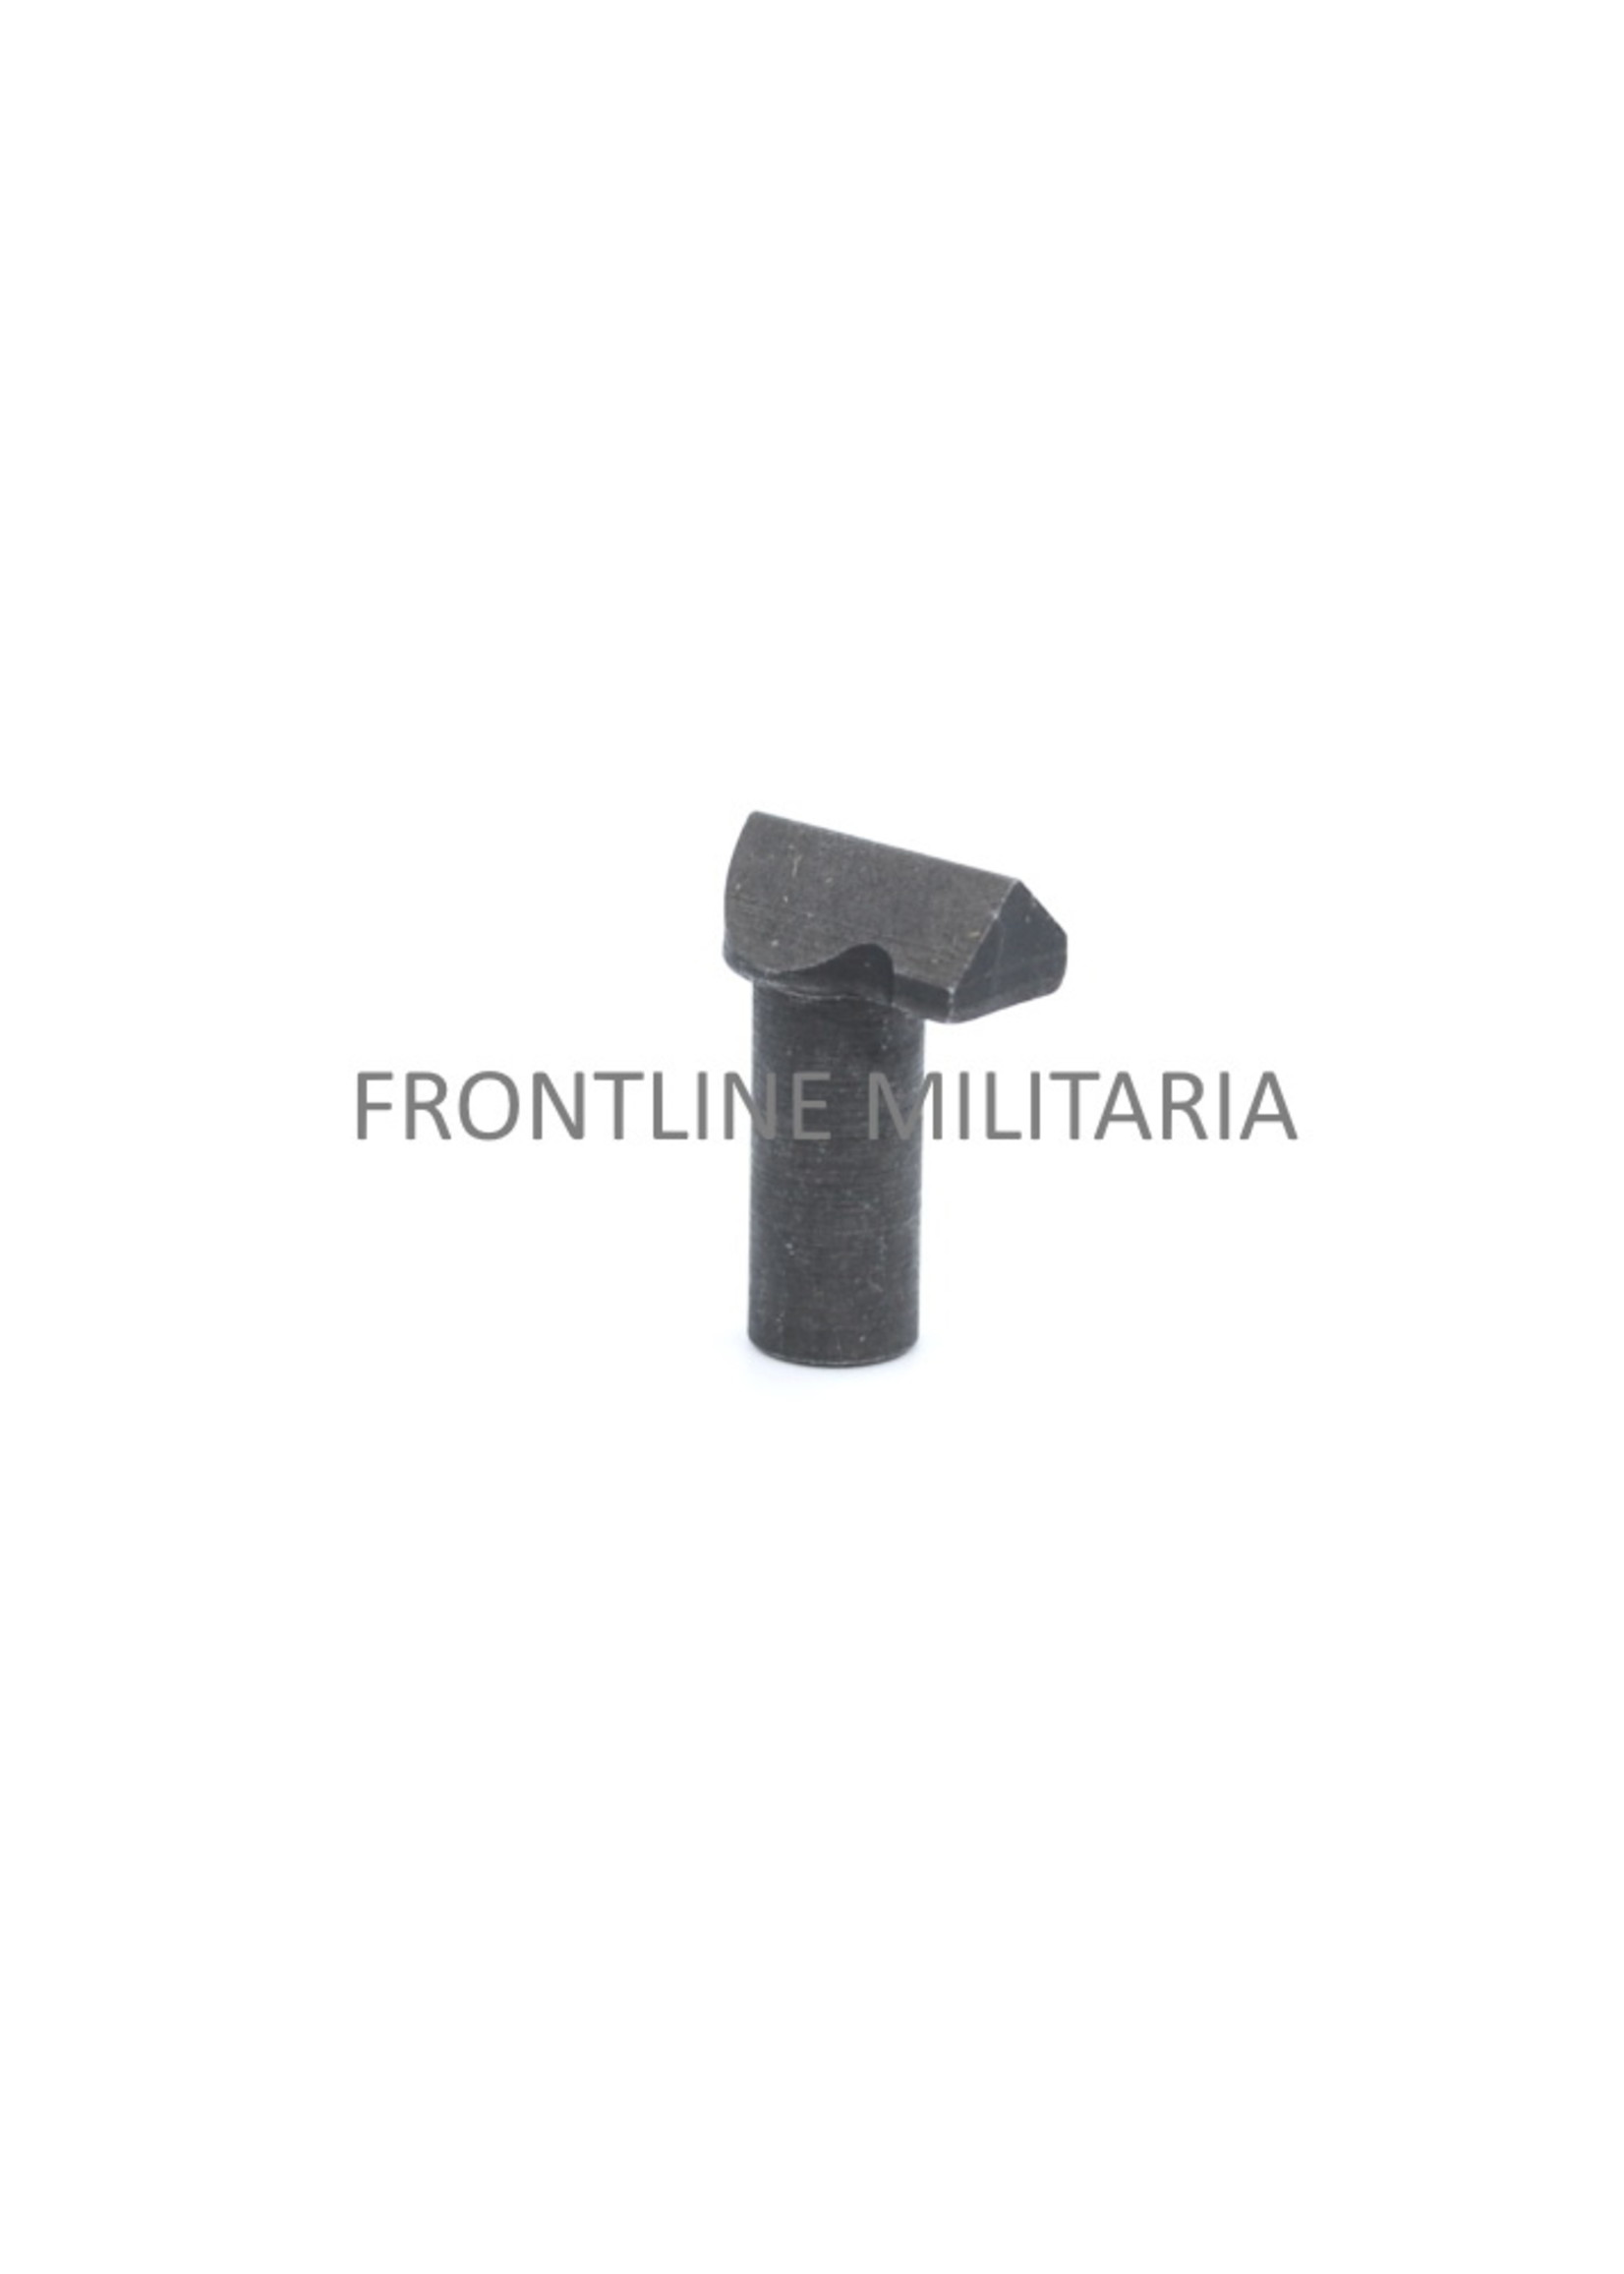 Safety plunger for the G43 and K43 Rifle